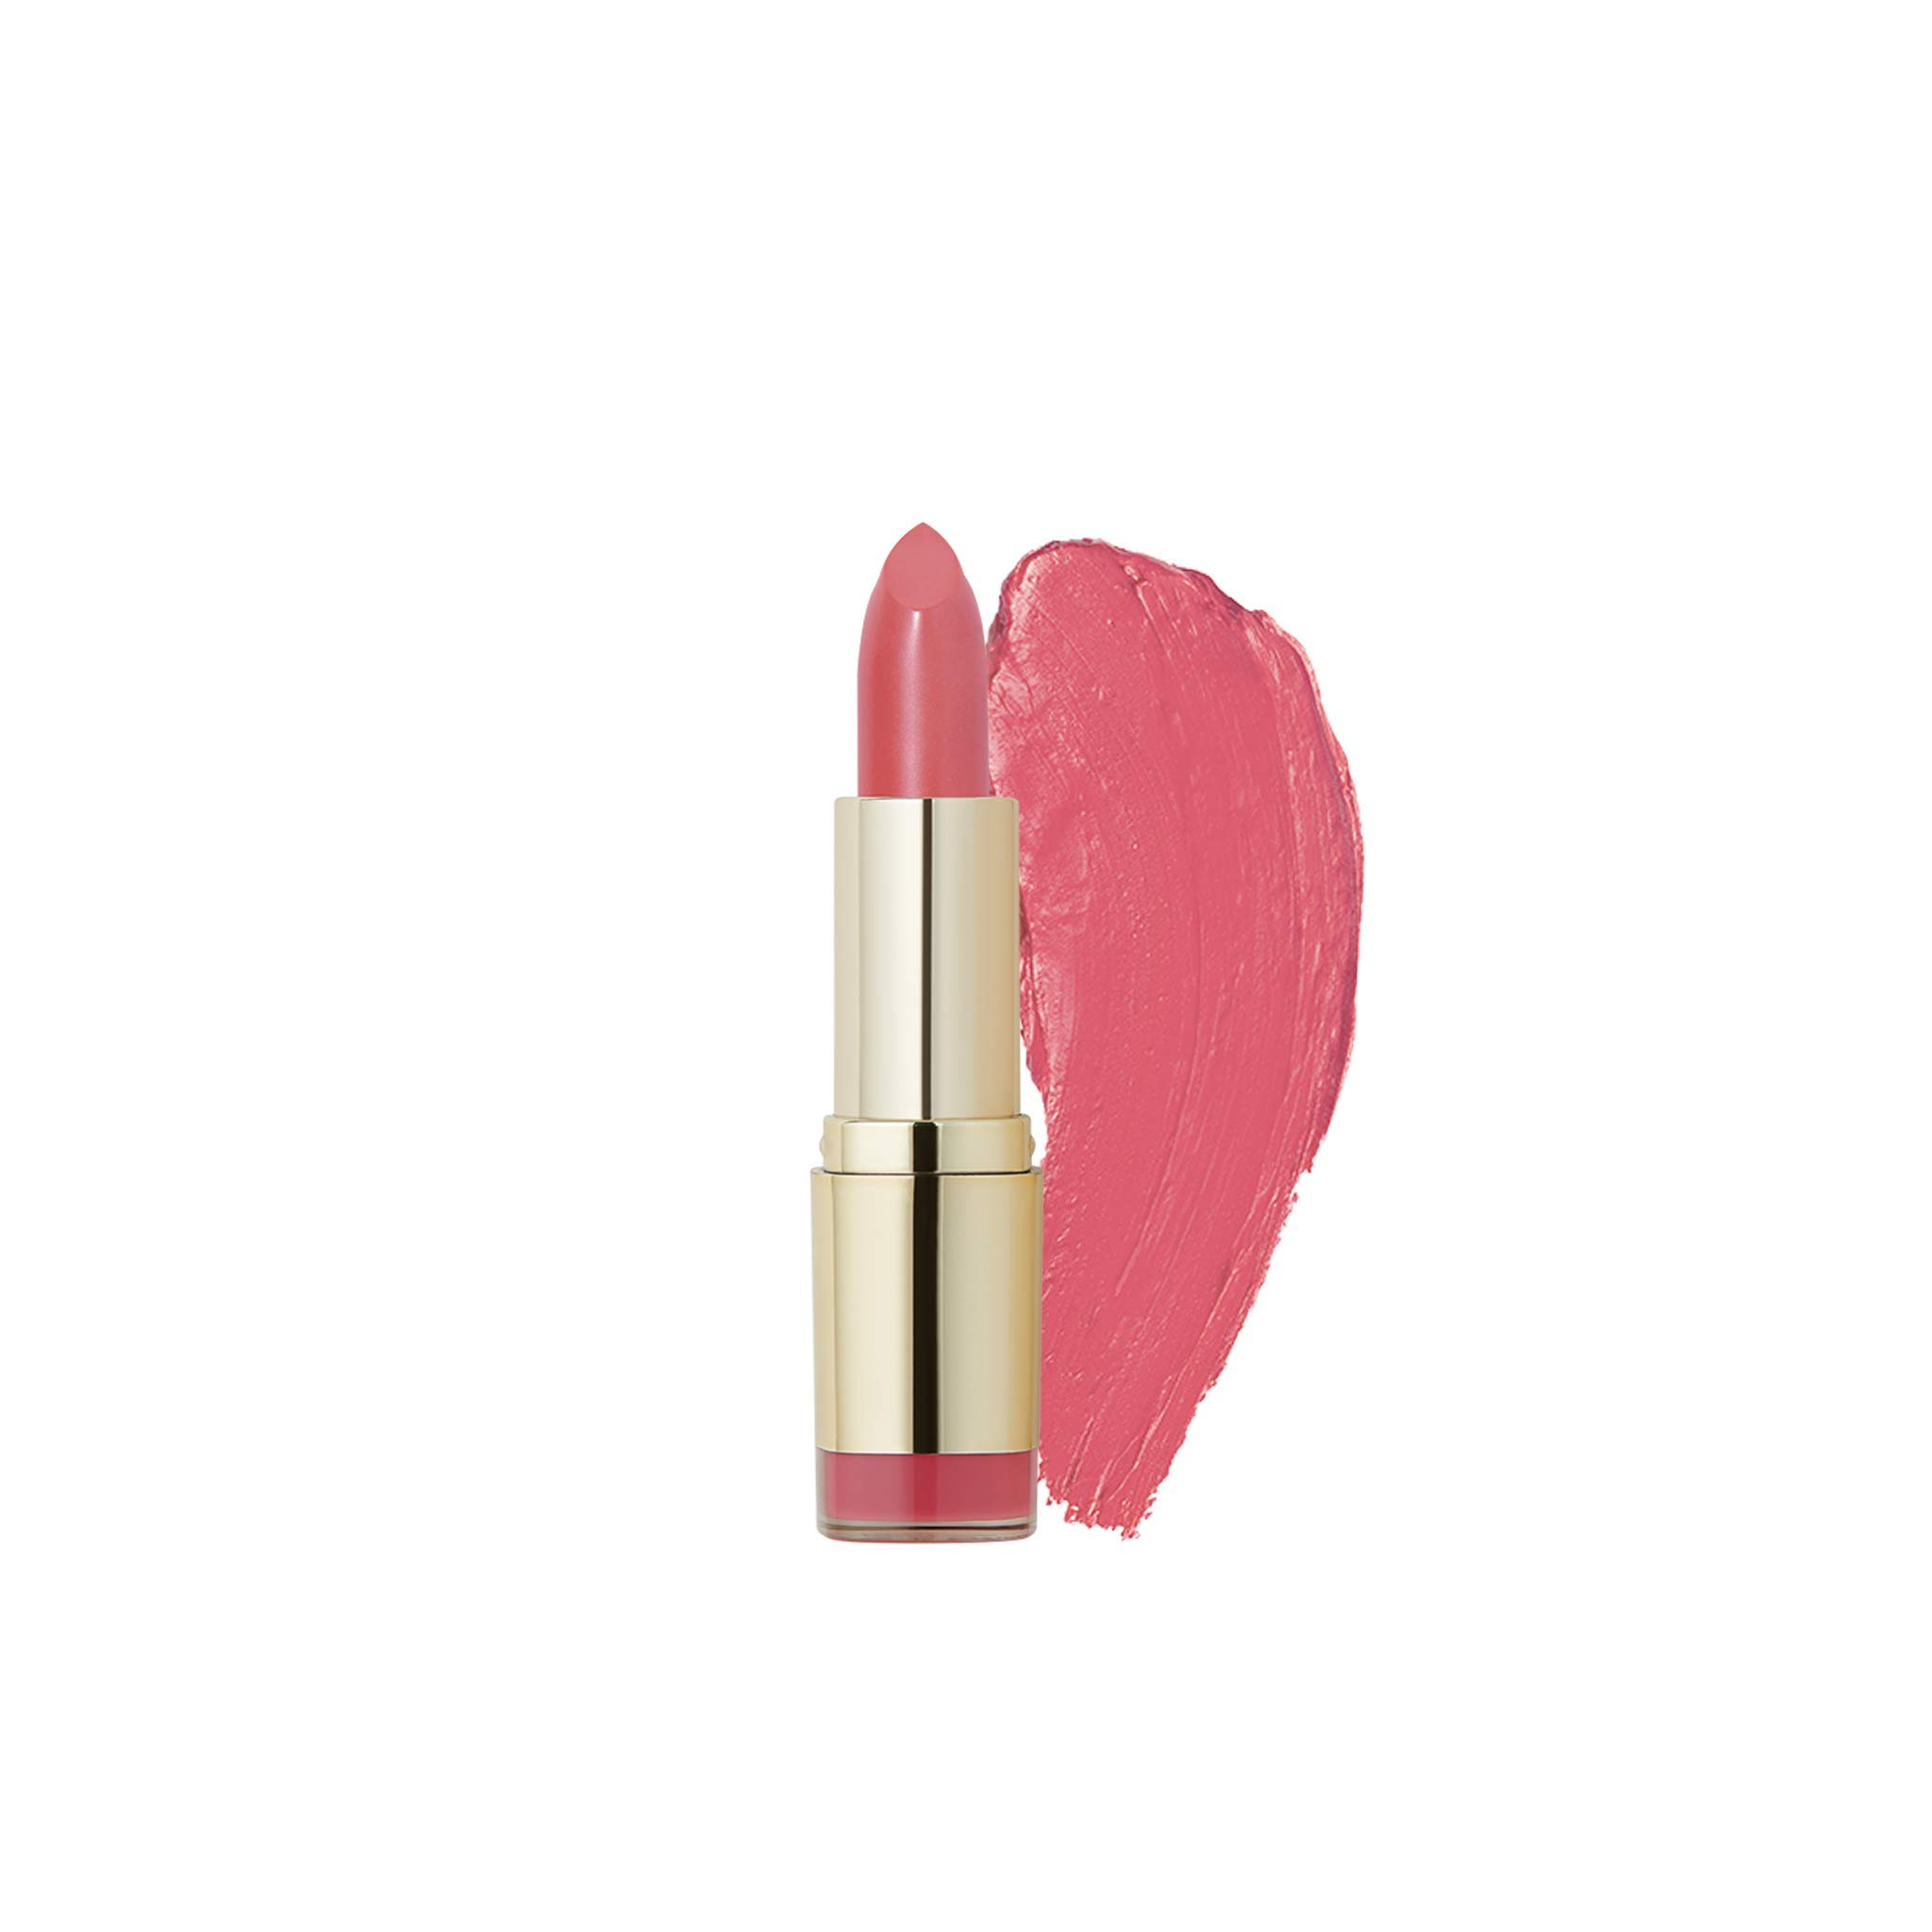 Milani Color Statement Lipstick - Fruit Punch, Cruelty-Free Nourishing Lip Stick in Vibrant Shades, Pink Lipstick, 0.14 Ounce